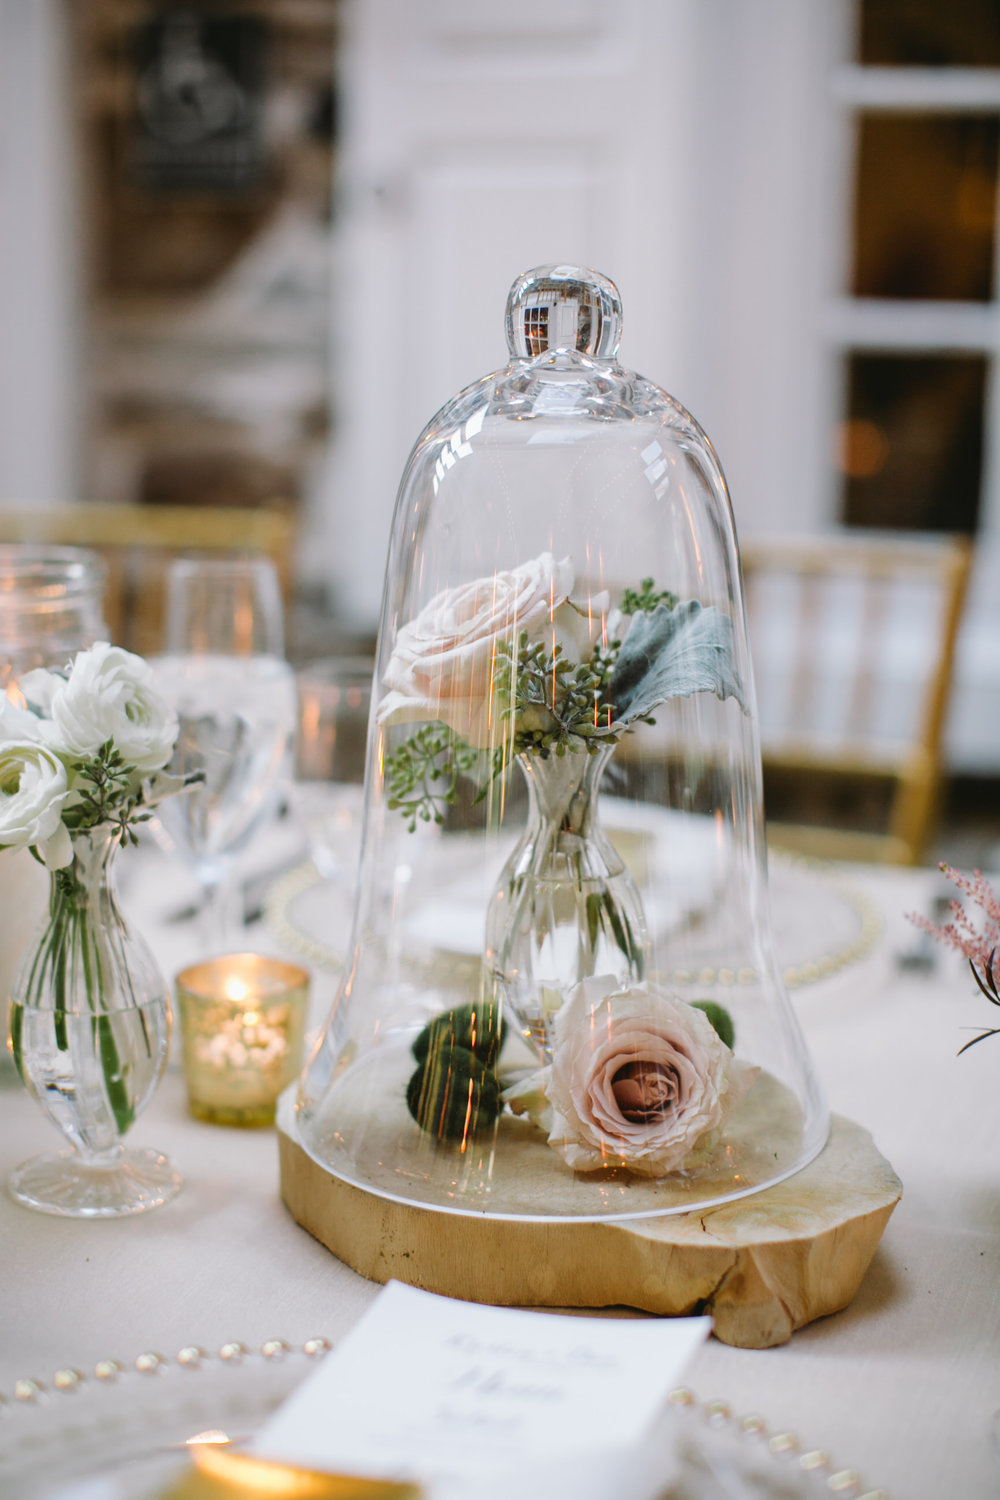 28 Appleford Estate Centerpieces Papertini Floral Bell Jar.jpg